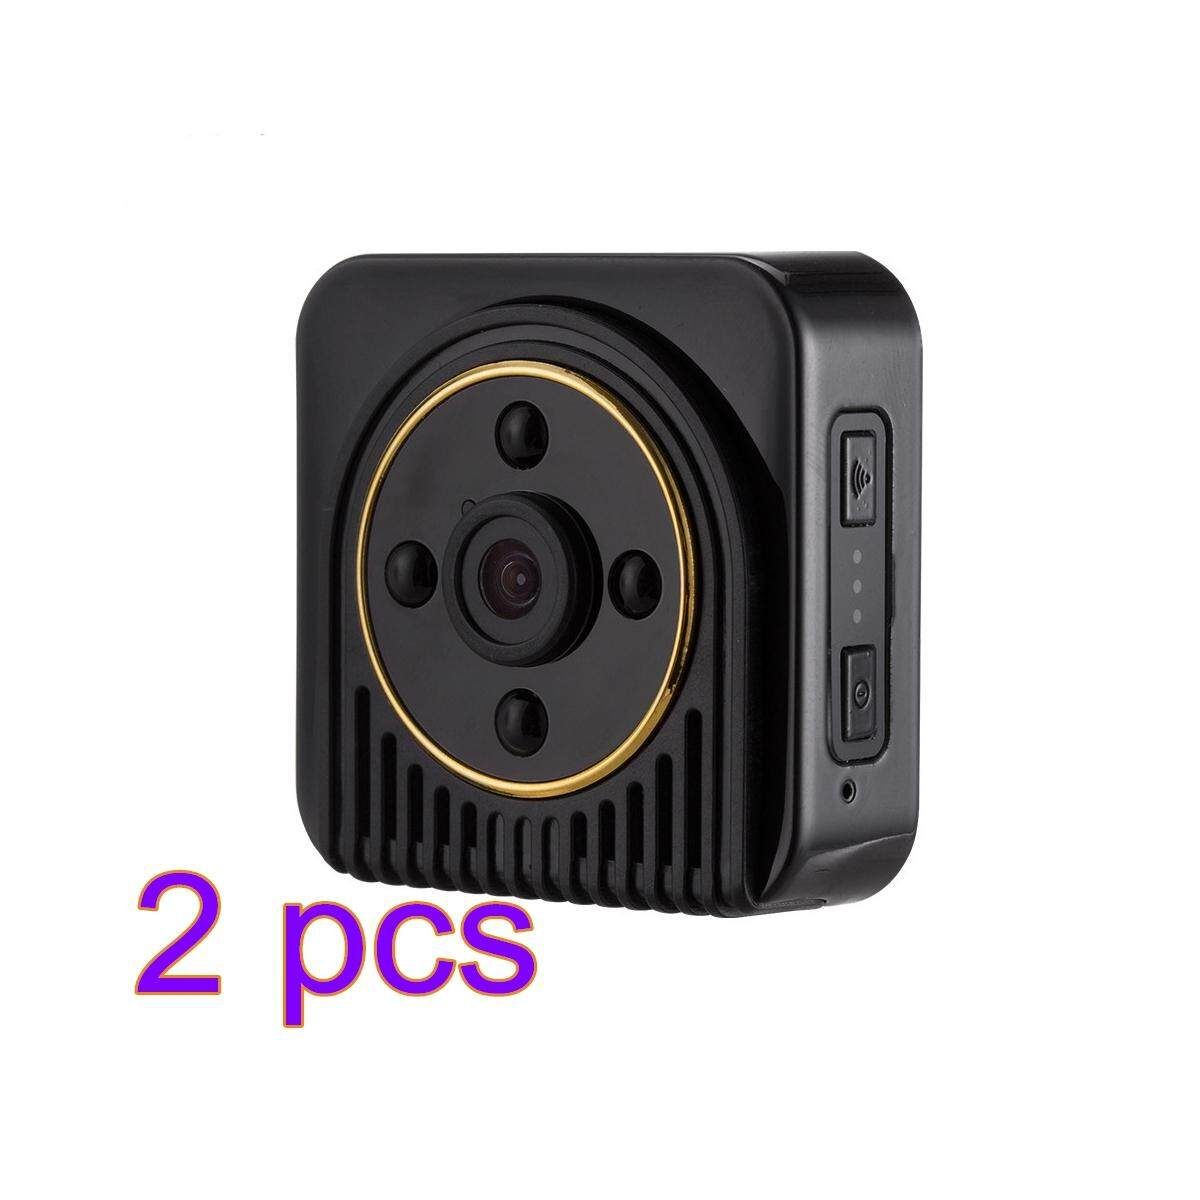 H5 Wifi IP Mini Camera Wireless HD 1080P Infrared Micro Camcorders IR Night Vision P2P Action DVR Recorder